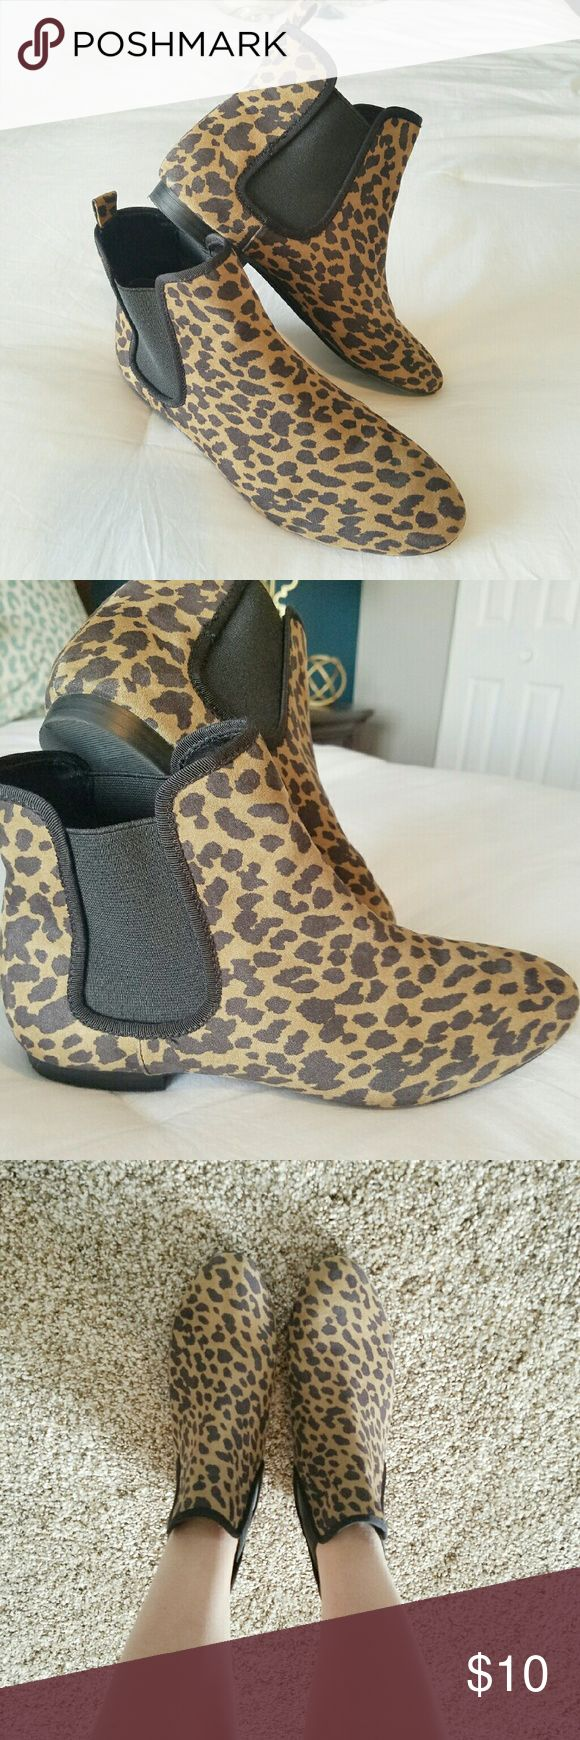 Leopard Print Ankle Boots Leopard Print Ankle Boots. Size 8. Fits true to size. Perfect with black leggings or tights. Cute with dresses. Worn once. Old Navy Shoes Ankle Boots & Booties